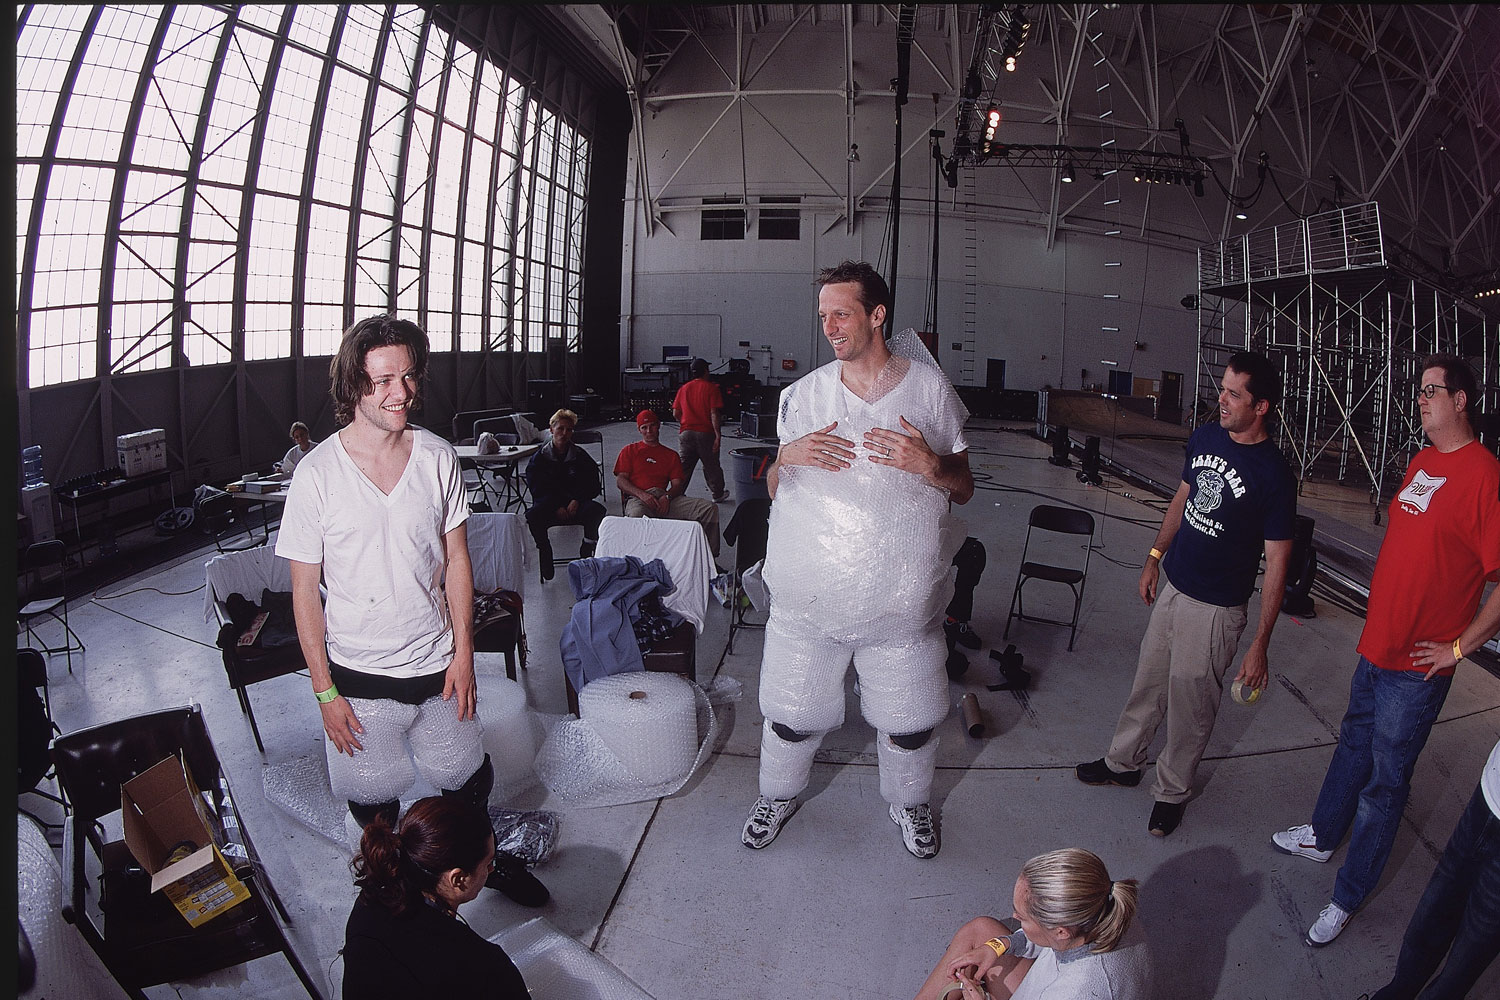 Tony Hawk and Bam Margera get dressed up in bubble wrap for the MTV movie Jackass.